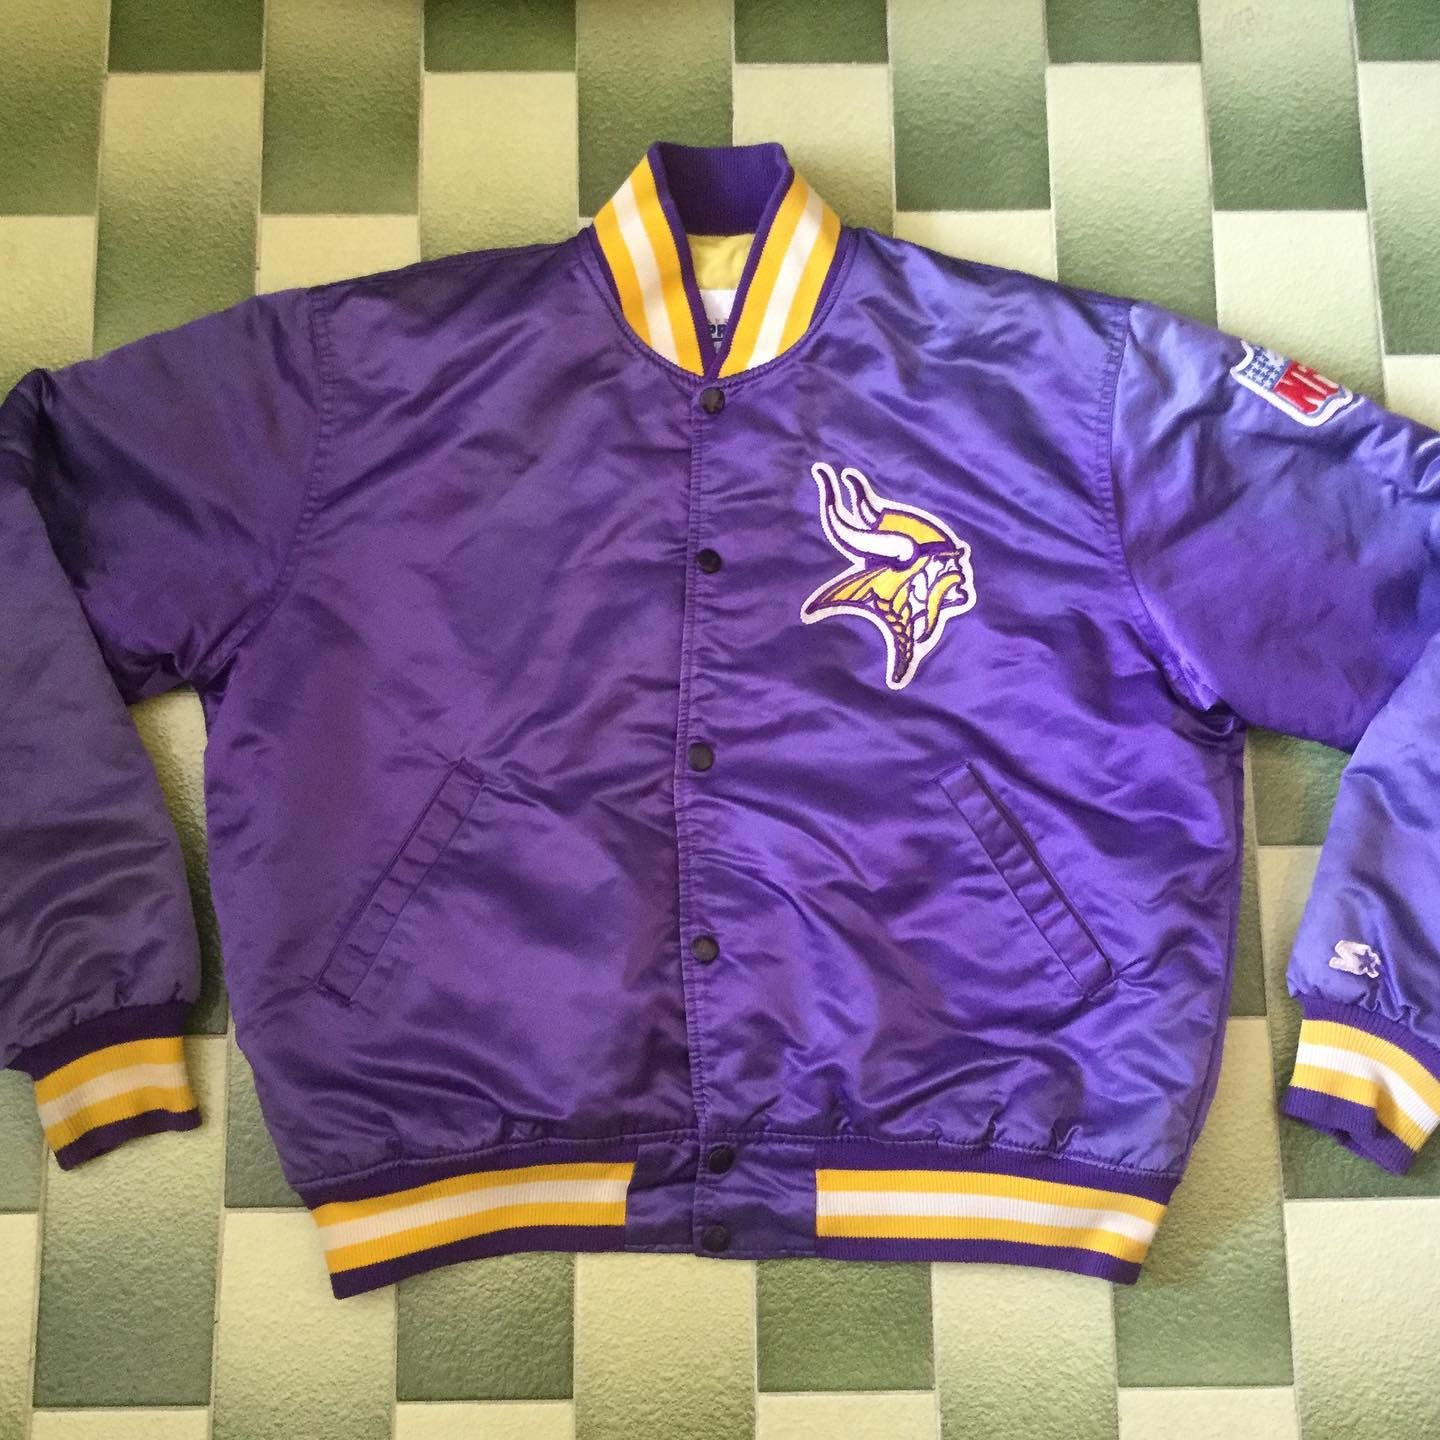 Vintage Starter Minnesota Vikings Jacket Size L Made In Usa Armpit To Armpit 25 Length 25 Dm Or Click The Link In My Bio For More Detail Picture [ 1440 x 1440 Pixel ]